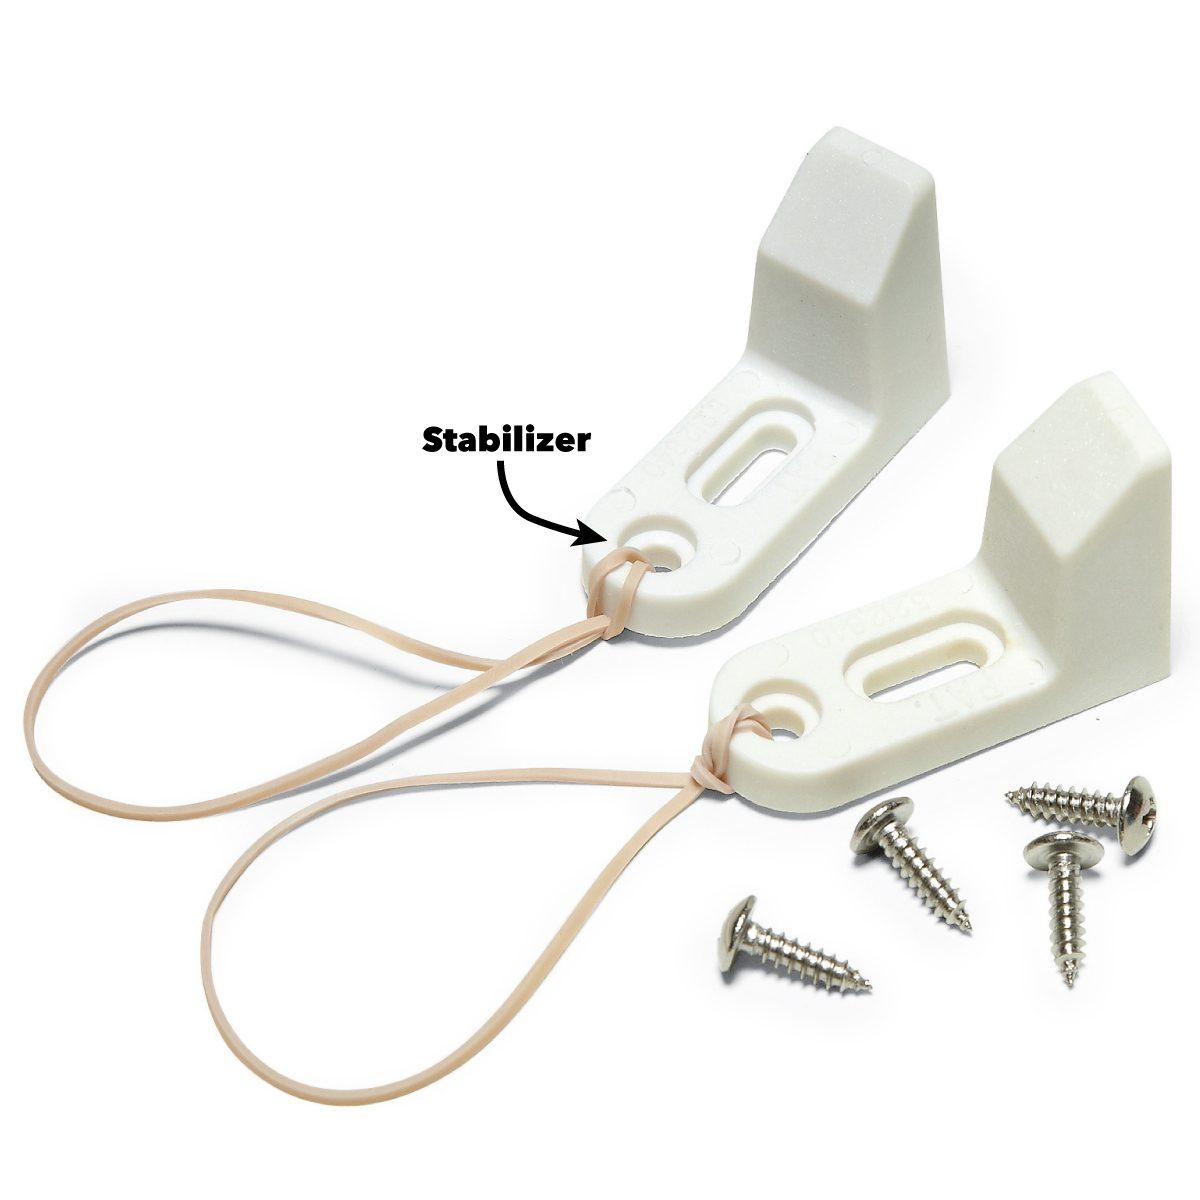 toilet seat repair stabilizers